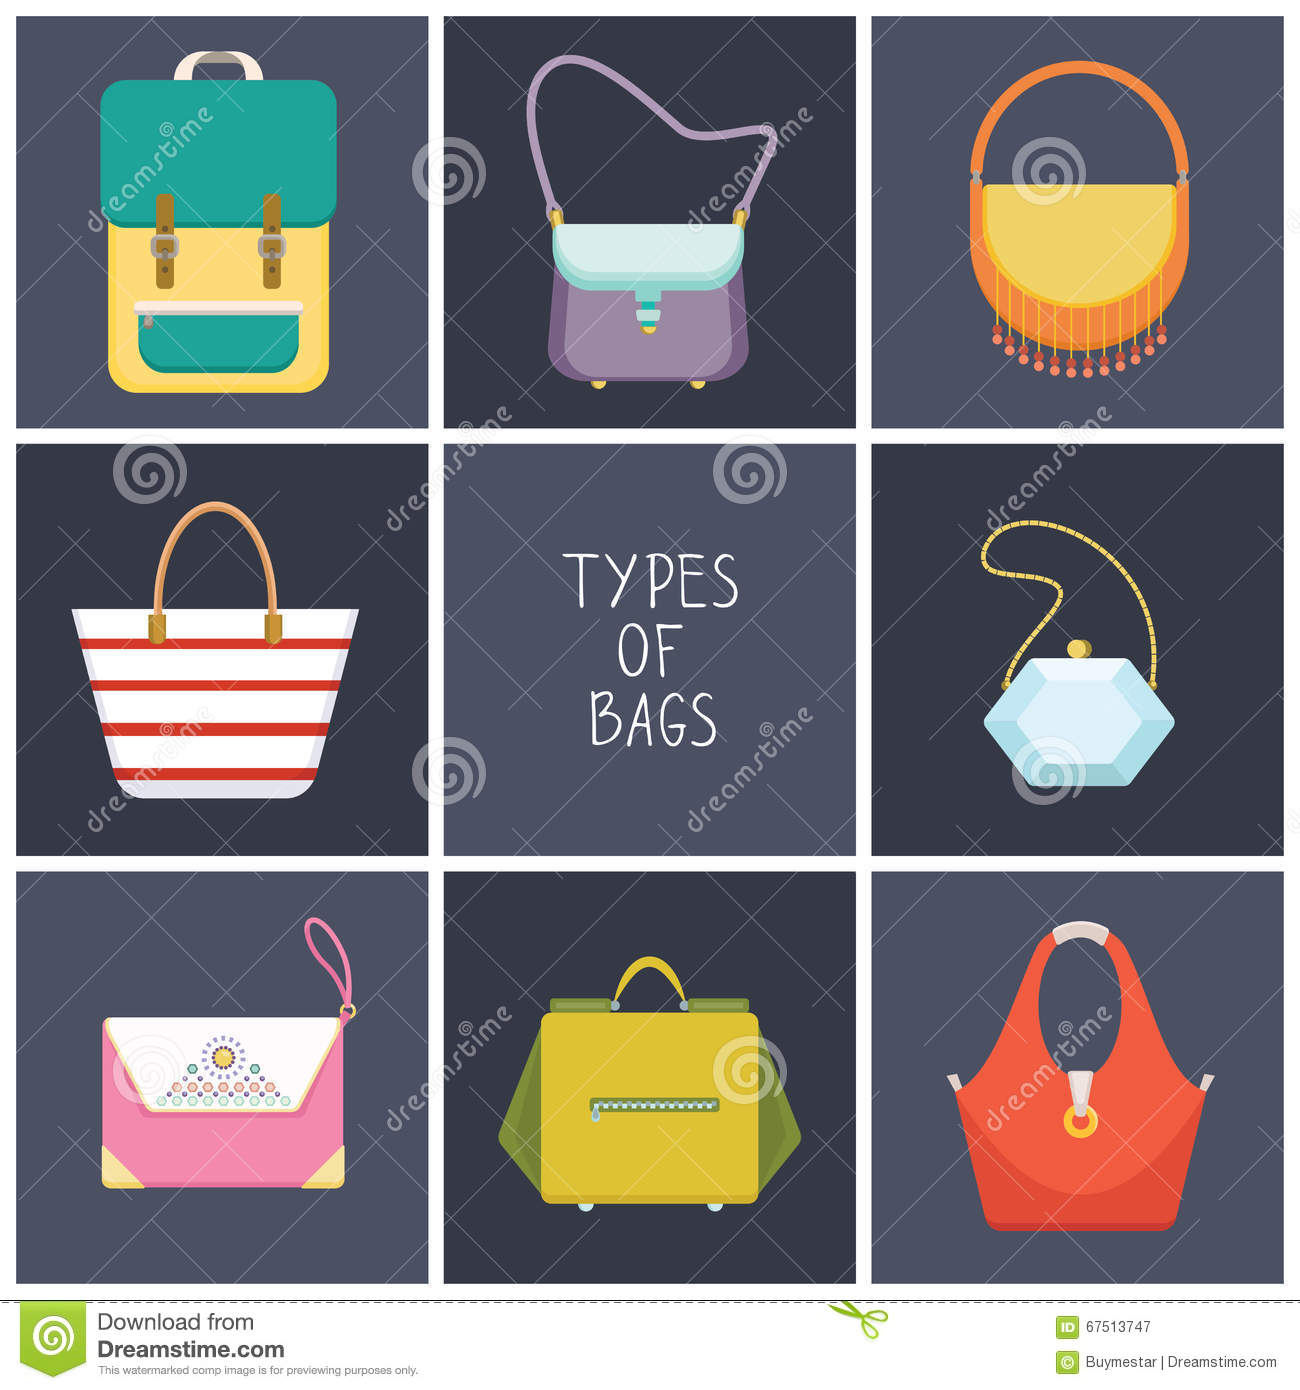 aa77f3f913 Set of eight simple flat icons of different hand bag types - vector  illustration